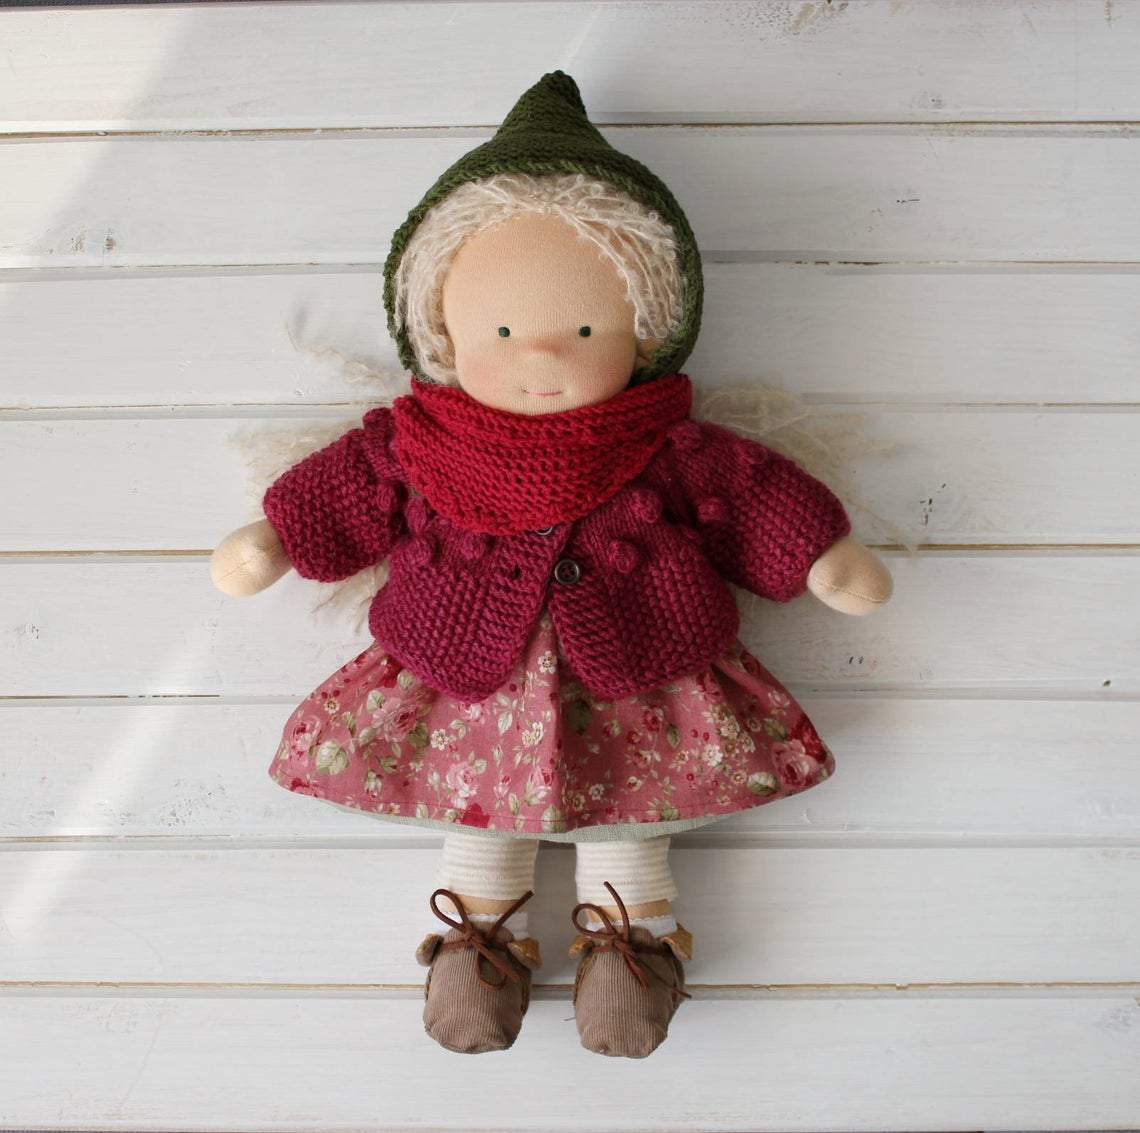 Waldorfdoll  Waldorfinspired  Natural fiber doll Waldorf doll clothes Soft doll Cuddle doll